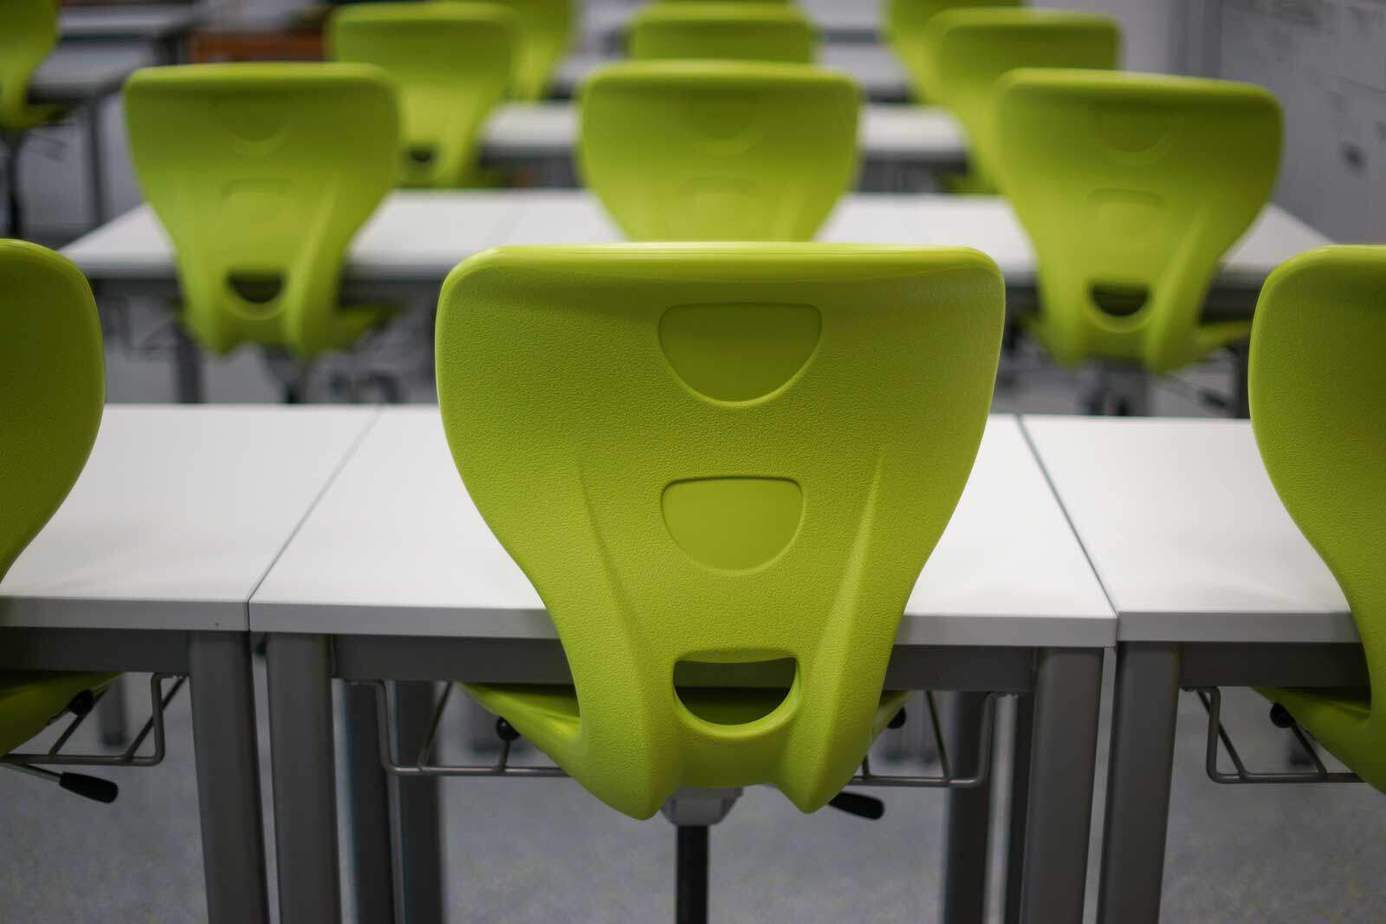 image of chairs assembled from BOM